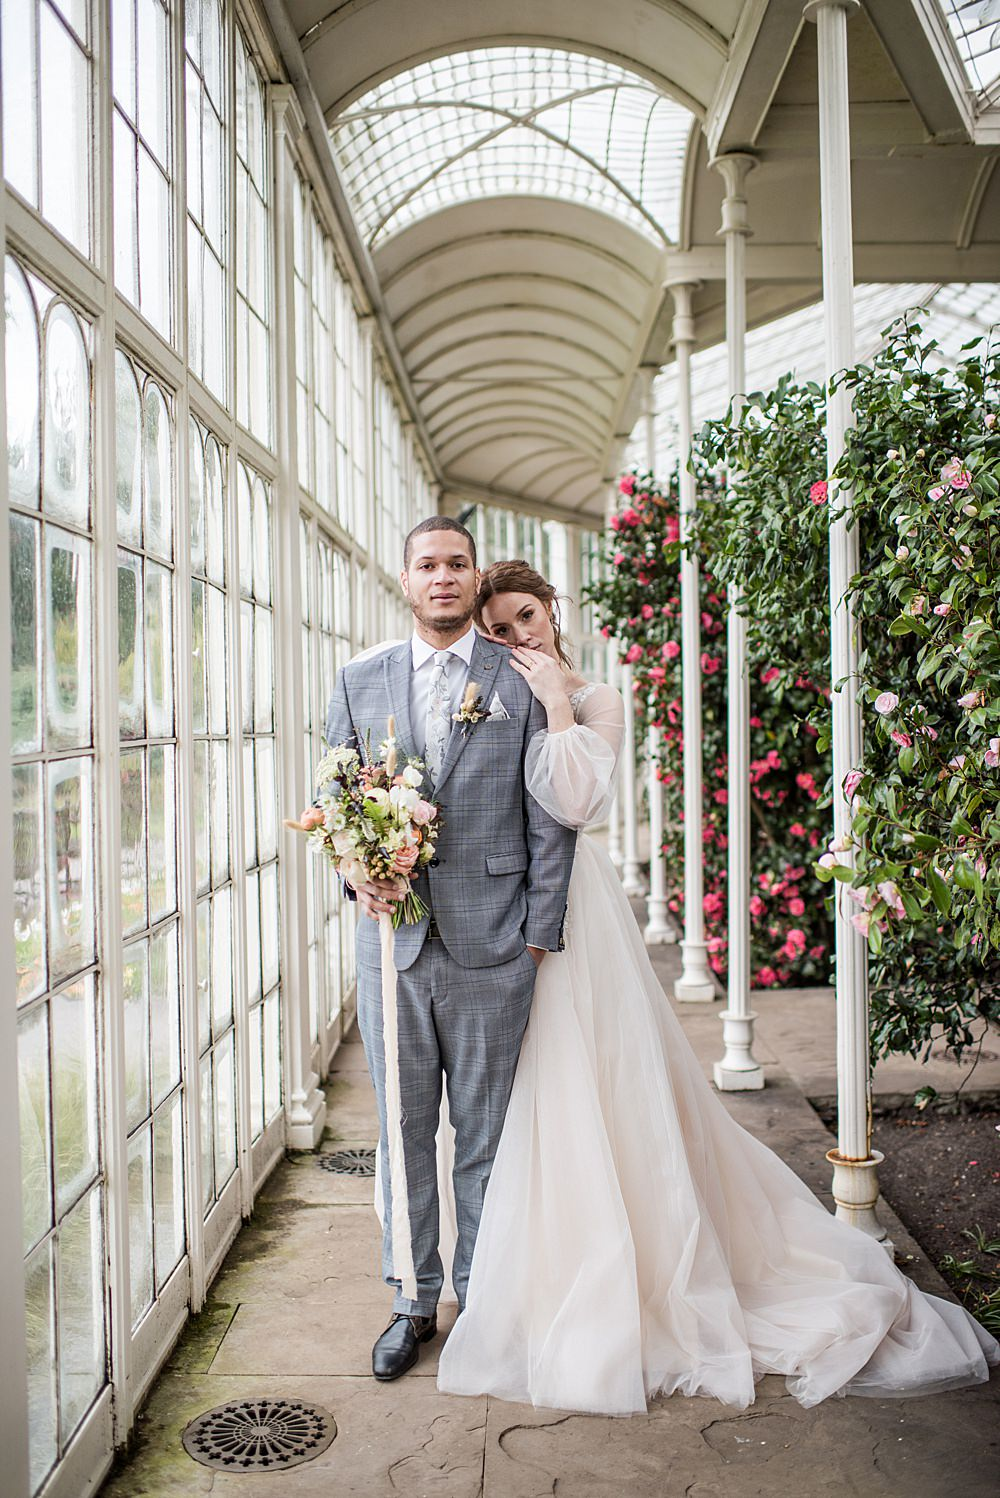 Groom Suit Grey Check Floral Tie Buttonhole Grass Peach Gold Wedding Ideas Jane Beadnell Photography